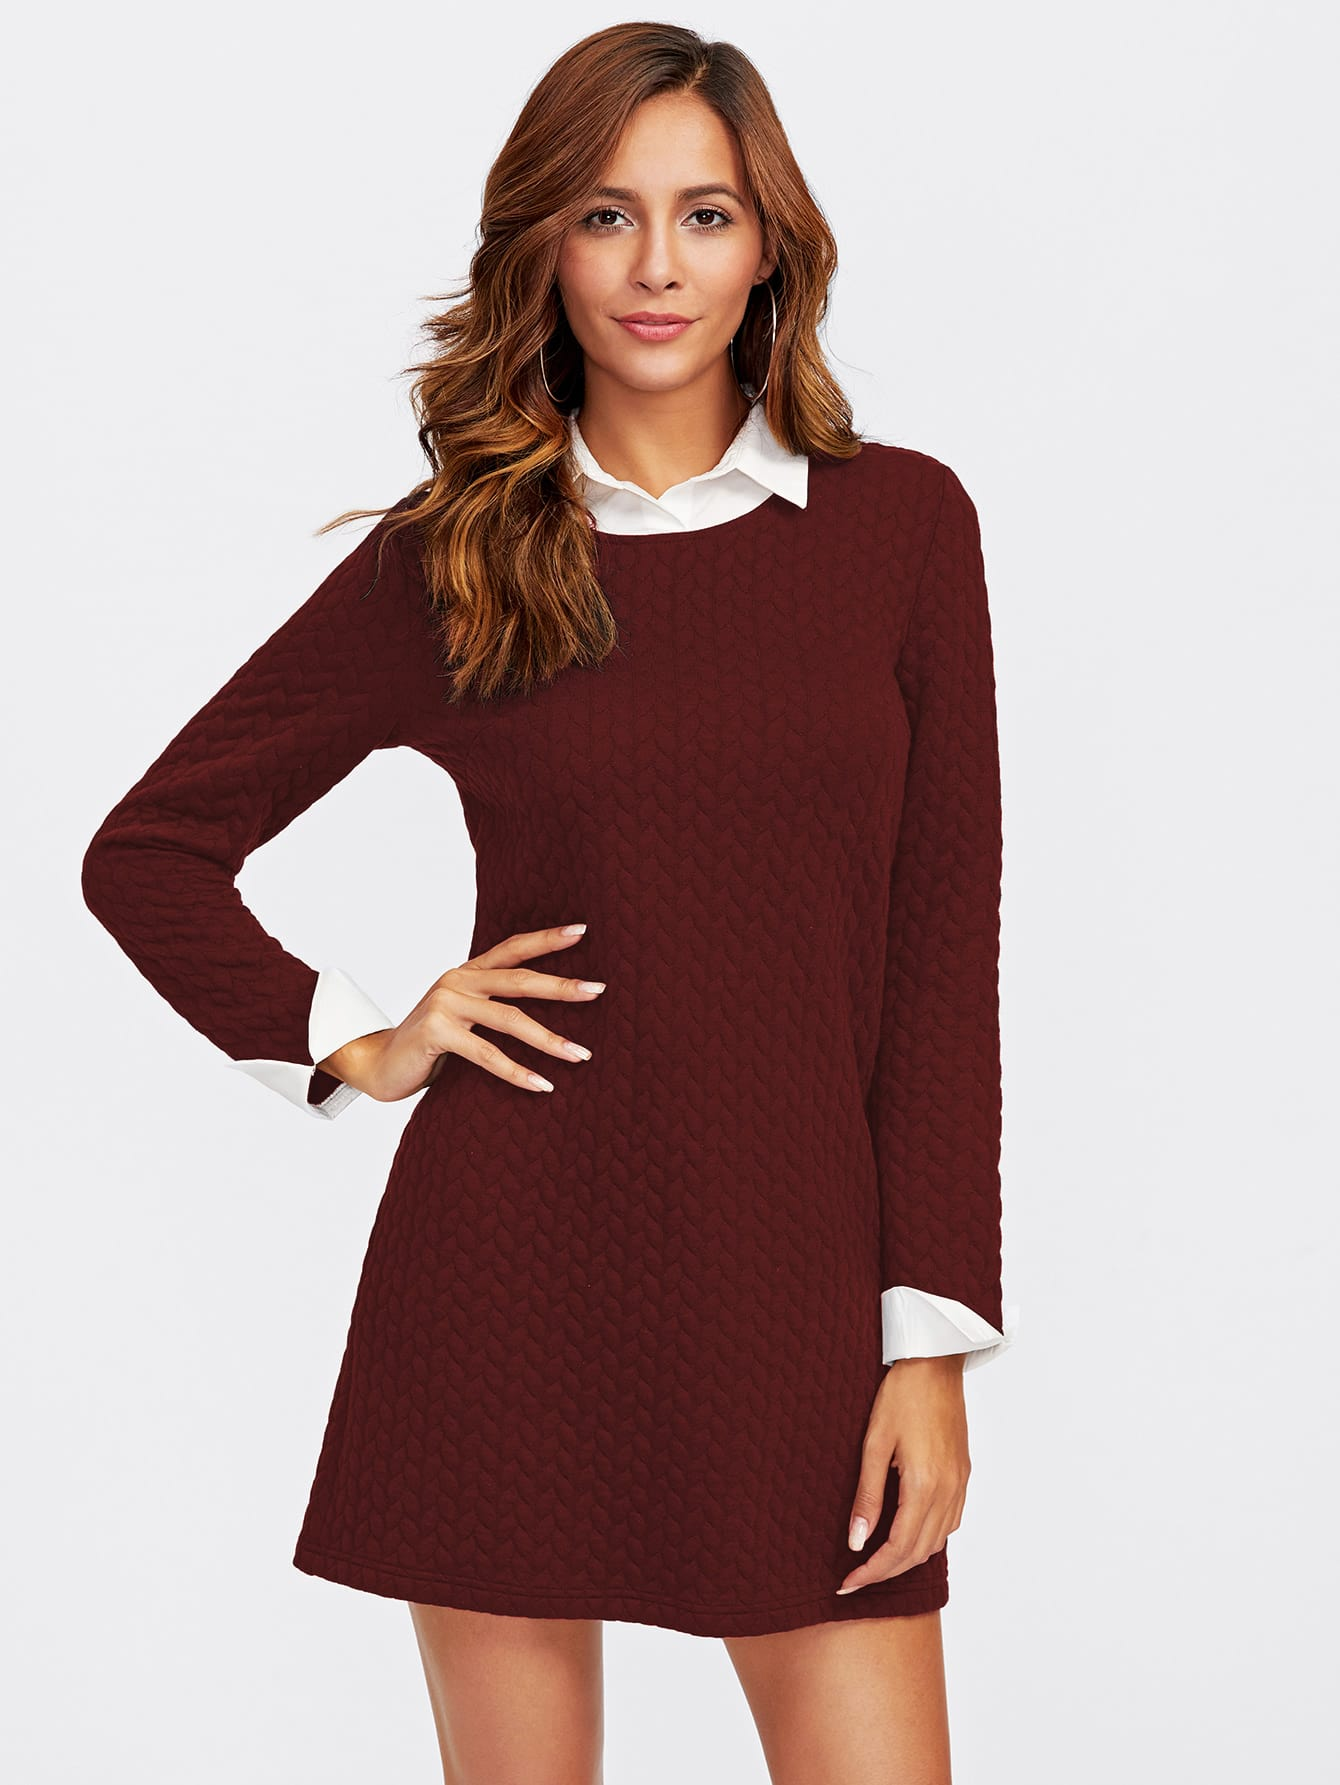 Contrast Collar And Cuff Textured 2 In 2 Dress lace collar and cuff tunic dress